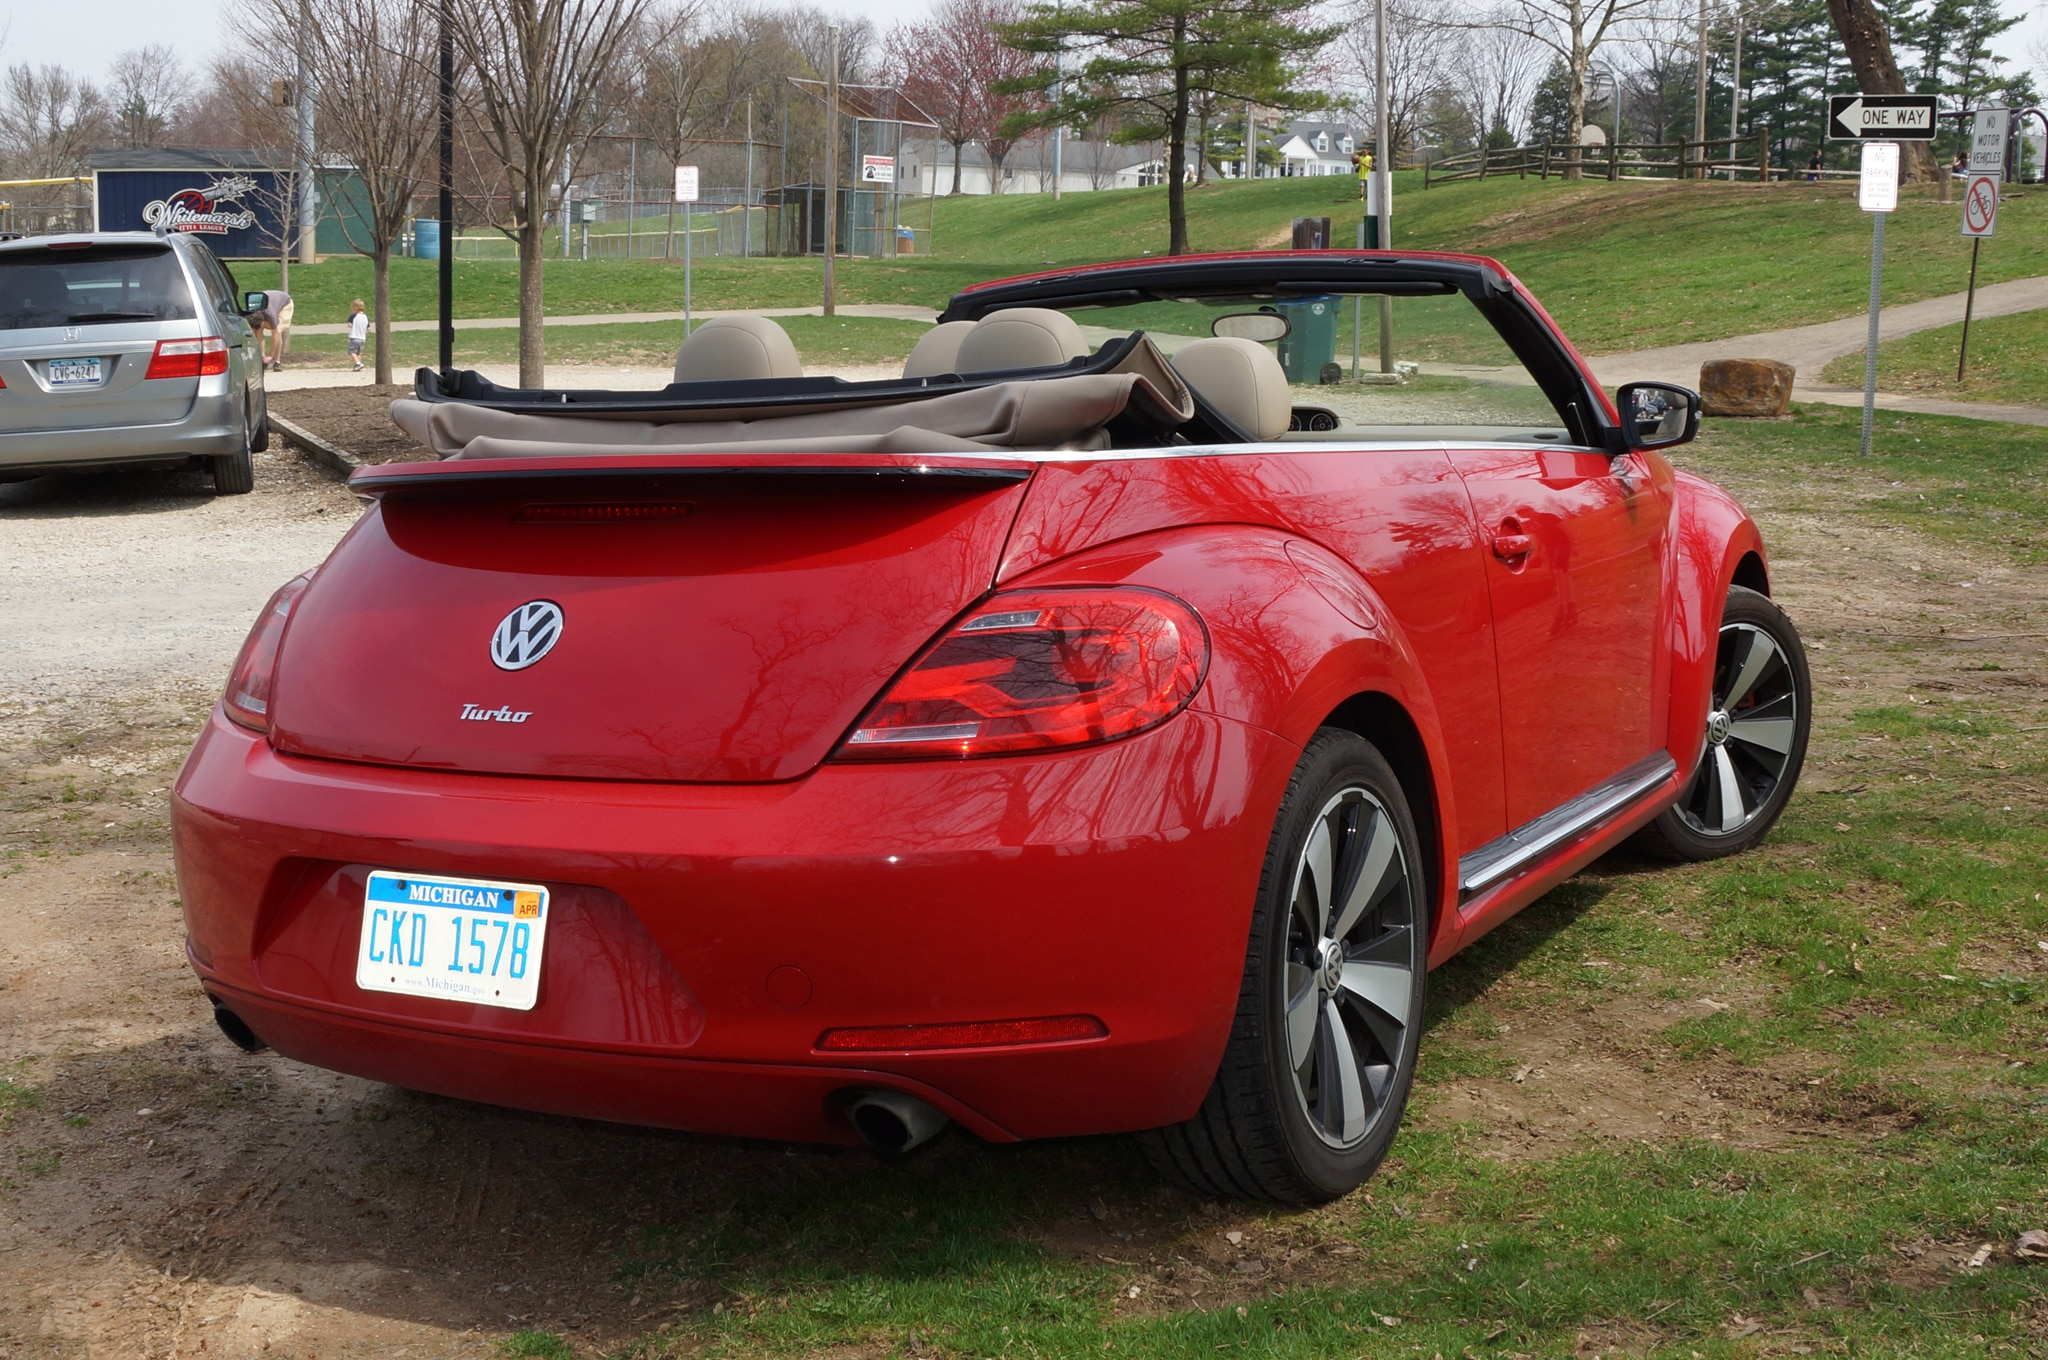 2013 Volkswagen Beetle Turbo Convertible Rear Three Quarters Parked1